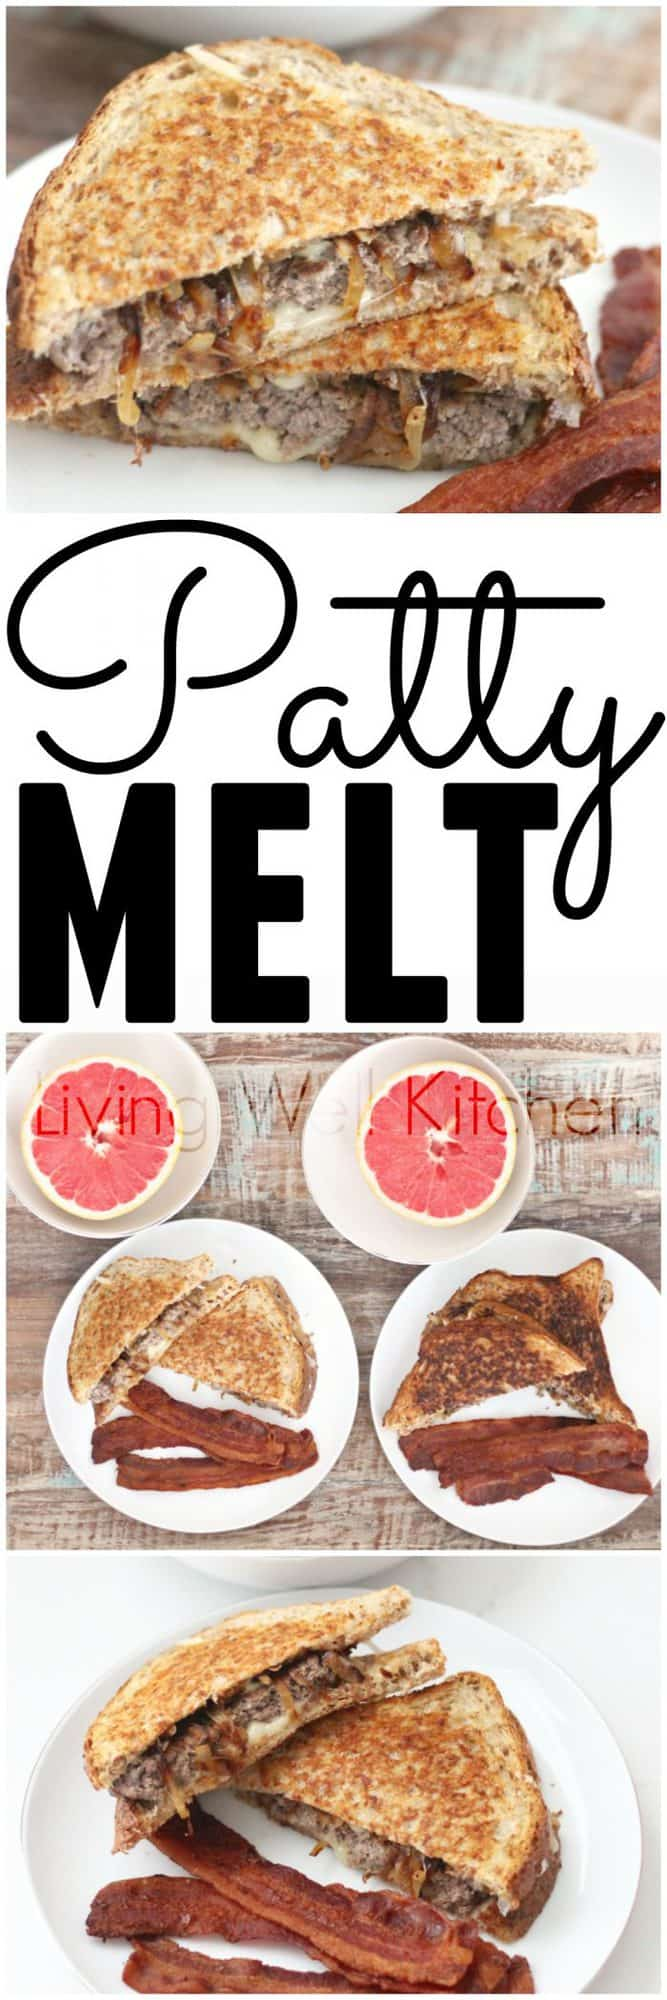 Classic diner food redone, this patty melt is a swiss cheese, ground sirloin, caramelized onion filled treat that will surely satisfy your craving. Patty Melt from Living Well Kitchen @memeinge